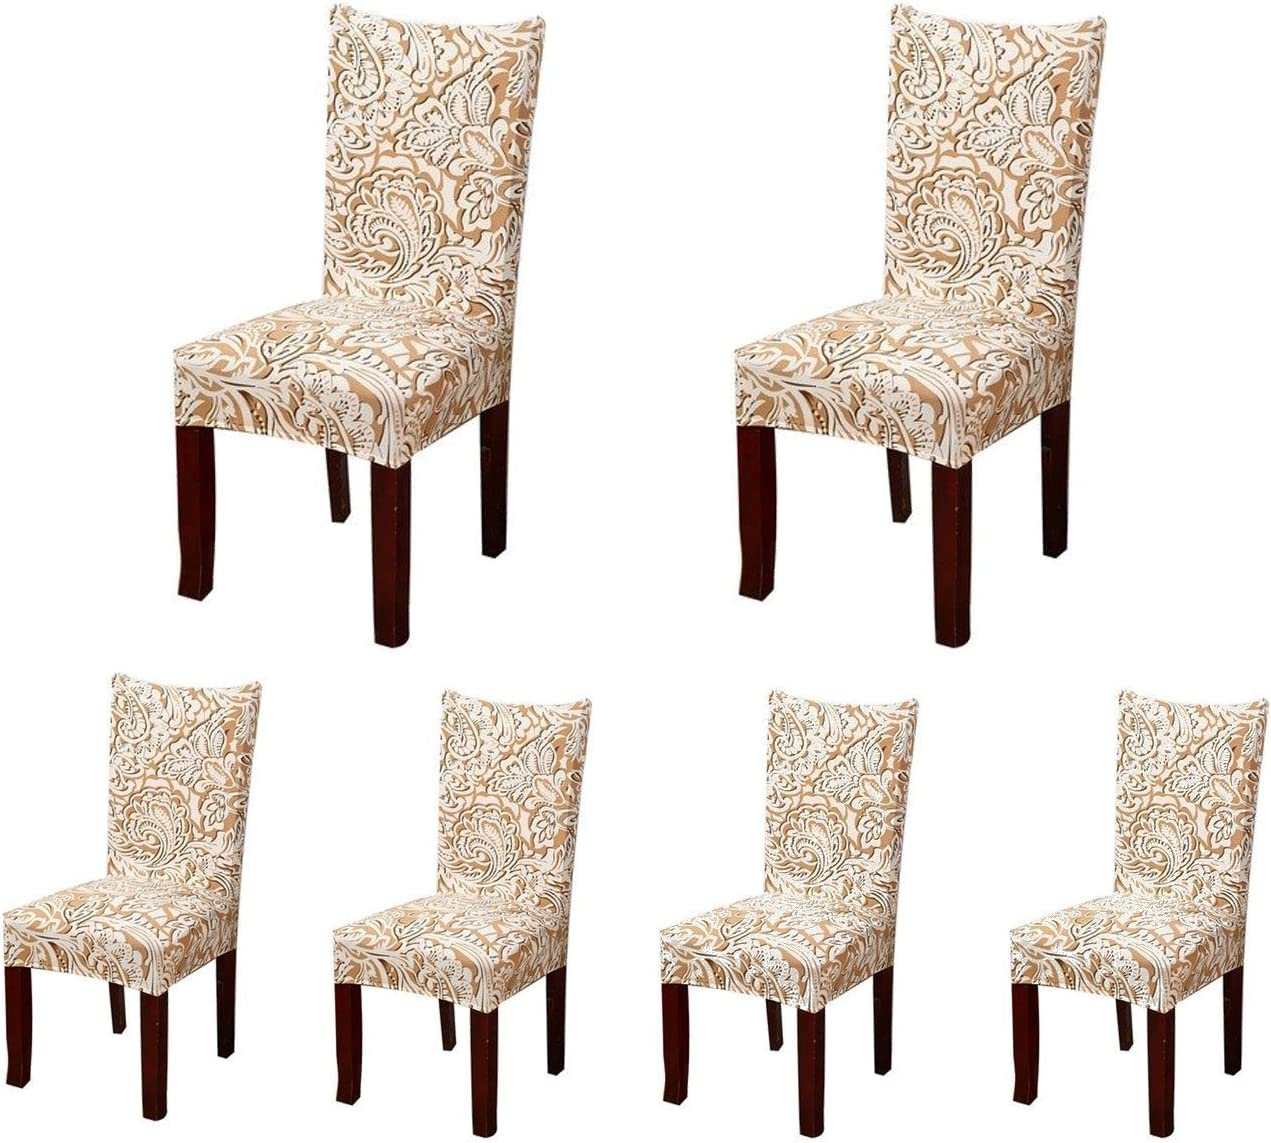 Deisy Dee Dining Chair Cover Protector Removable Washable for Hotel Dining Room Ceremony Chair Slipcovers C101 Beige Rose